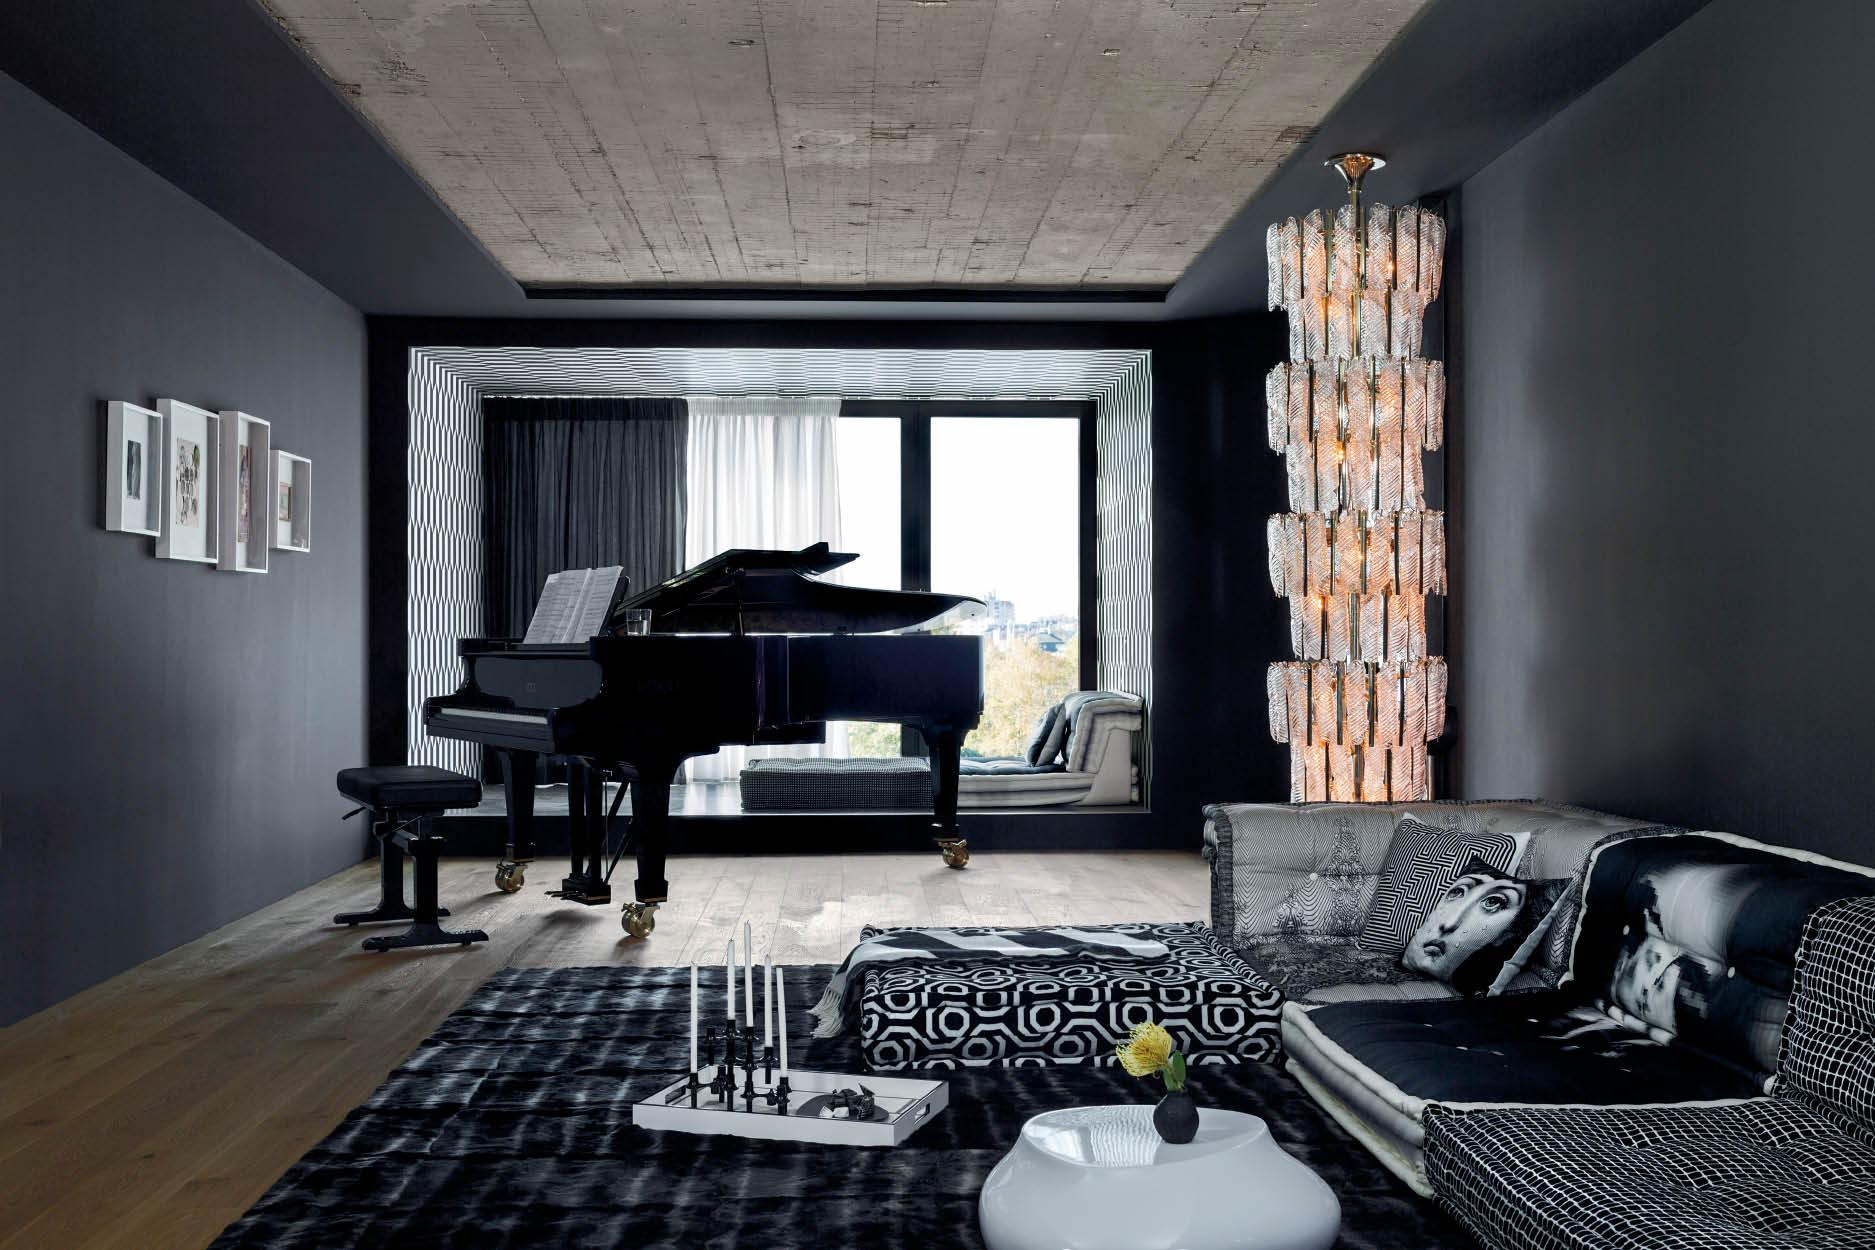 Deep window recesses allow light to flood into the consistently black-and-white-themed music room; an opulent light column made of Murano glass from Venini adds to the theatrical atmosphere